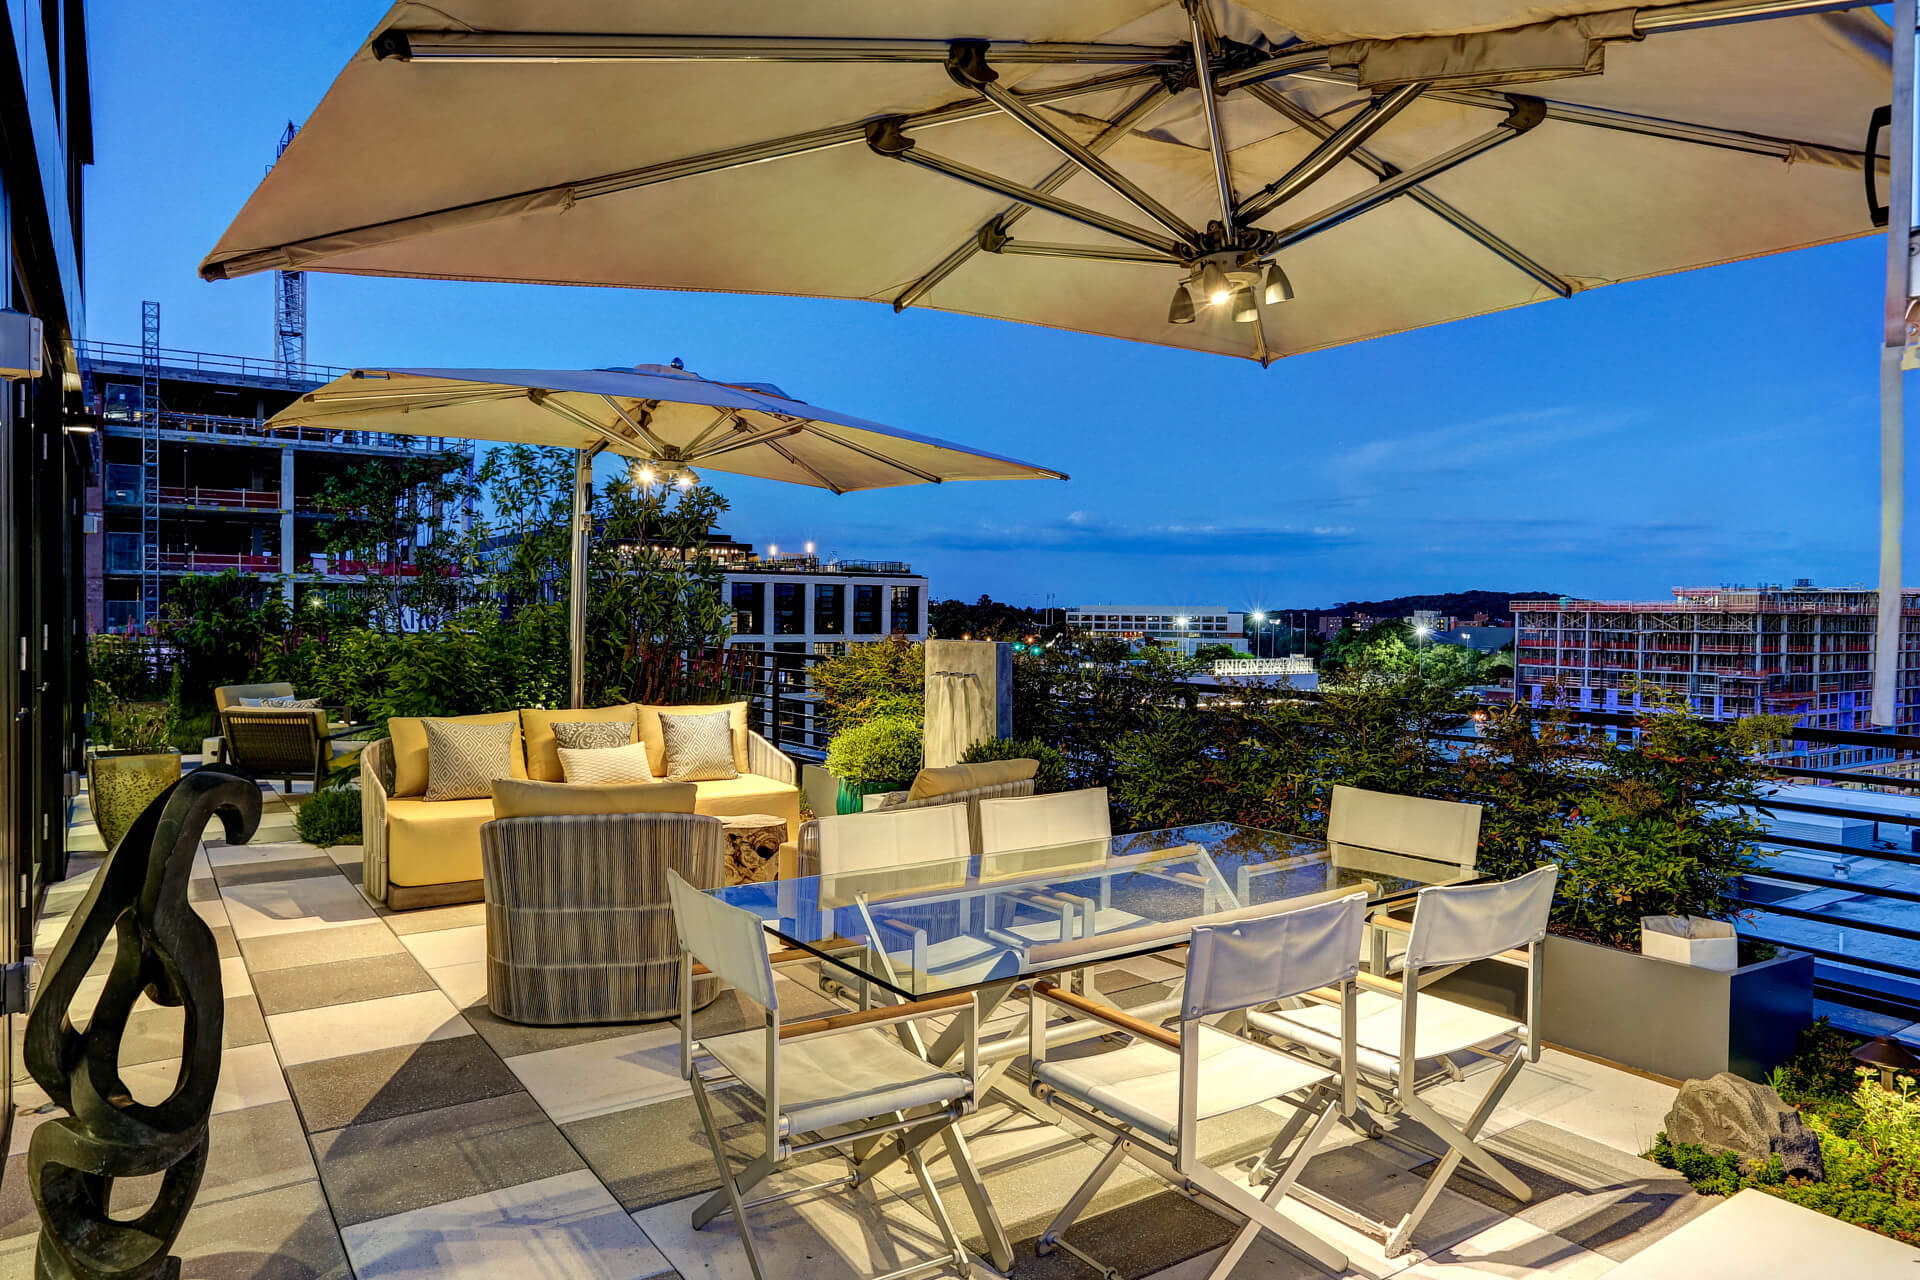 penthouse open air dining